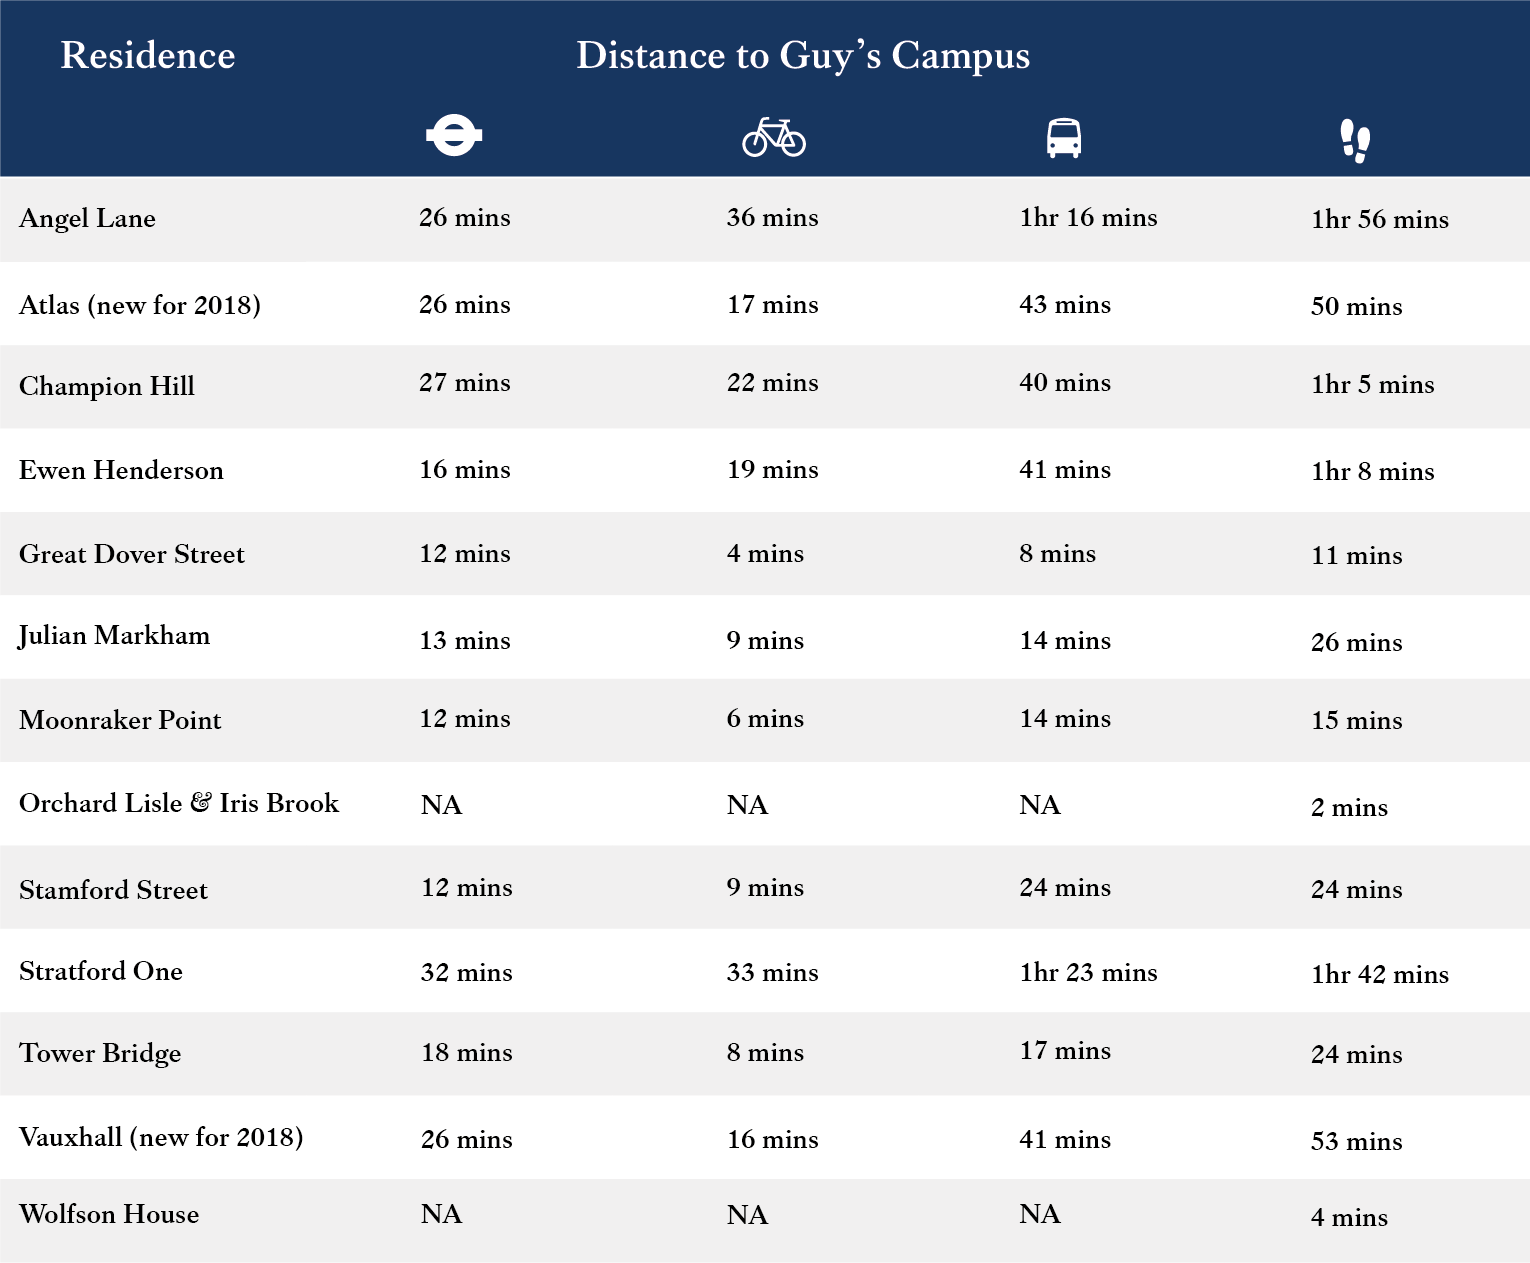 Distance to Guys Campus@2x